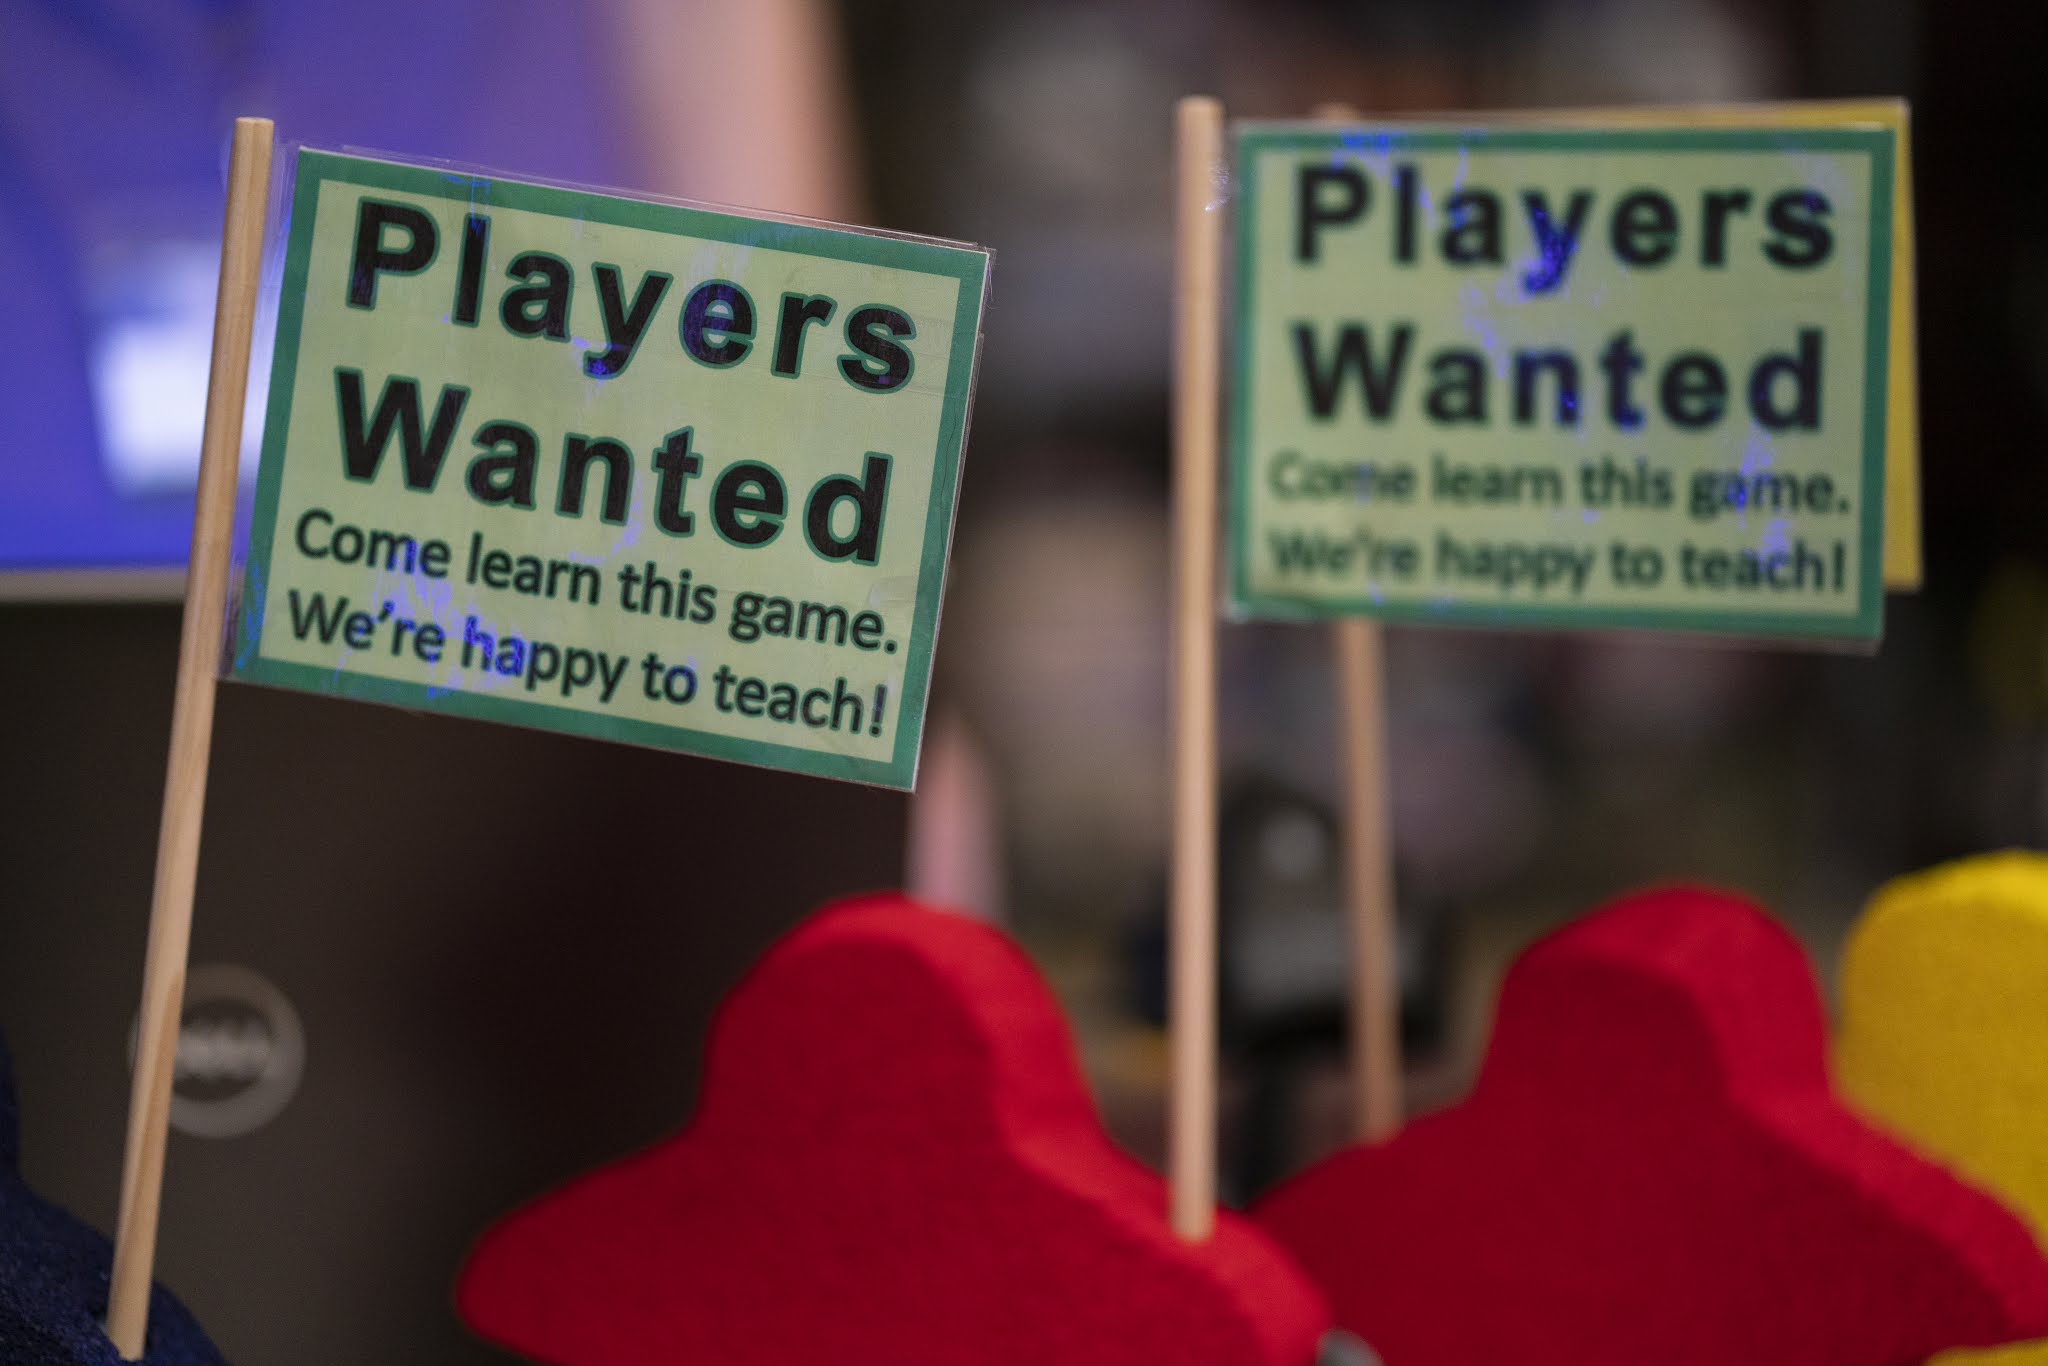 "Meeple-shaped sign holders. Sign Reads ""Players Wanted - Come Learn This Game. We're Happy to Teach!"""